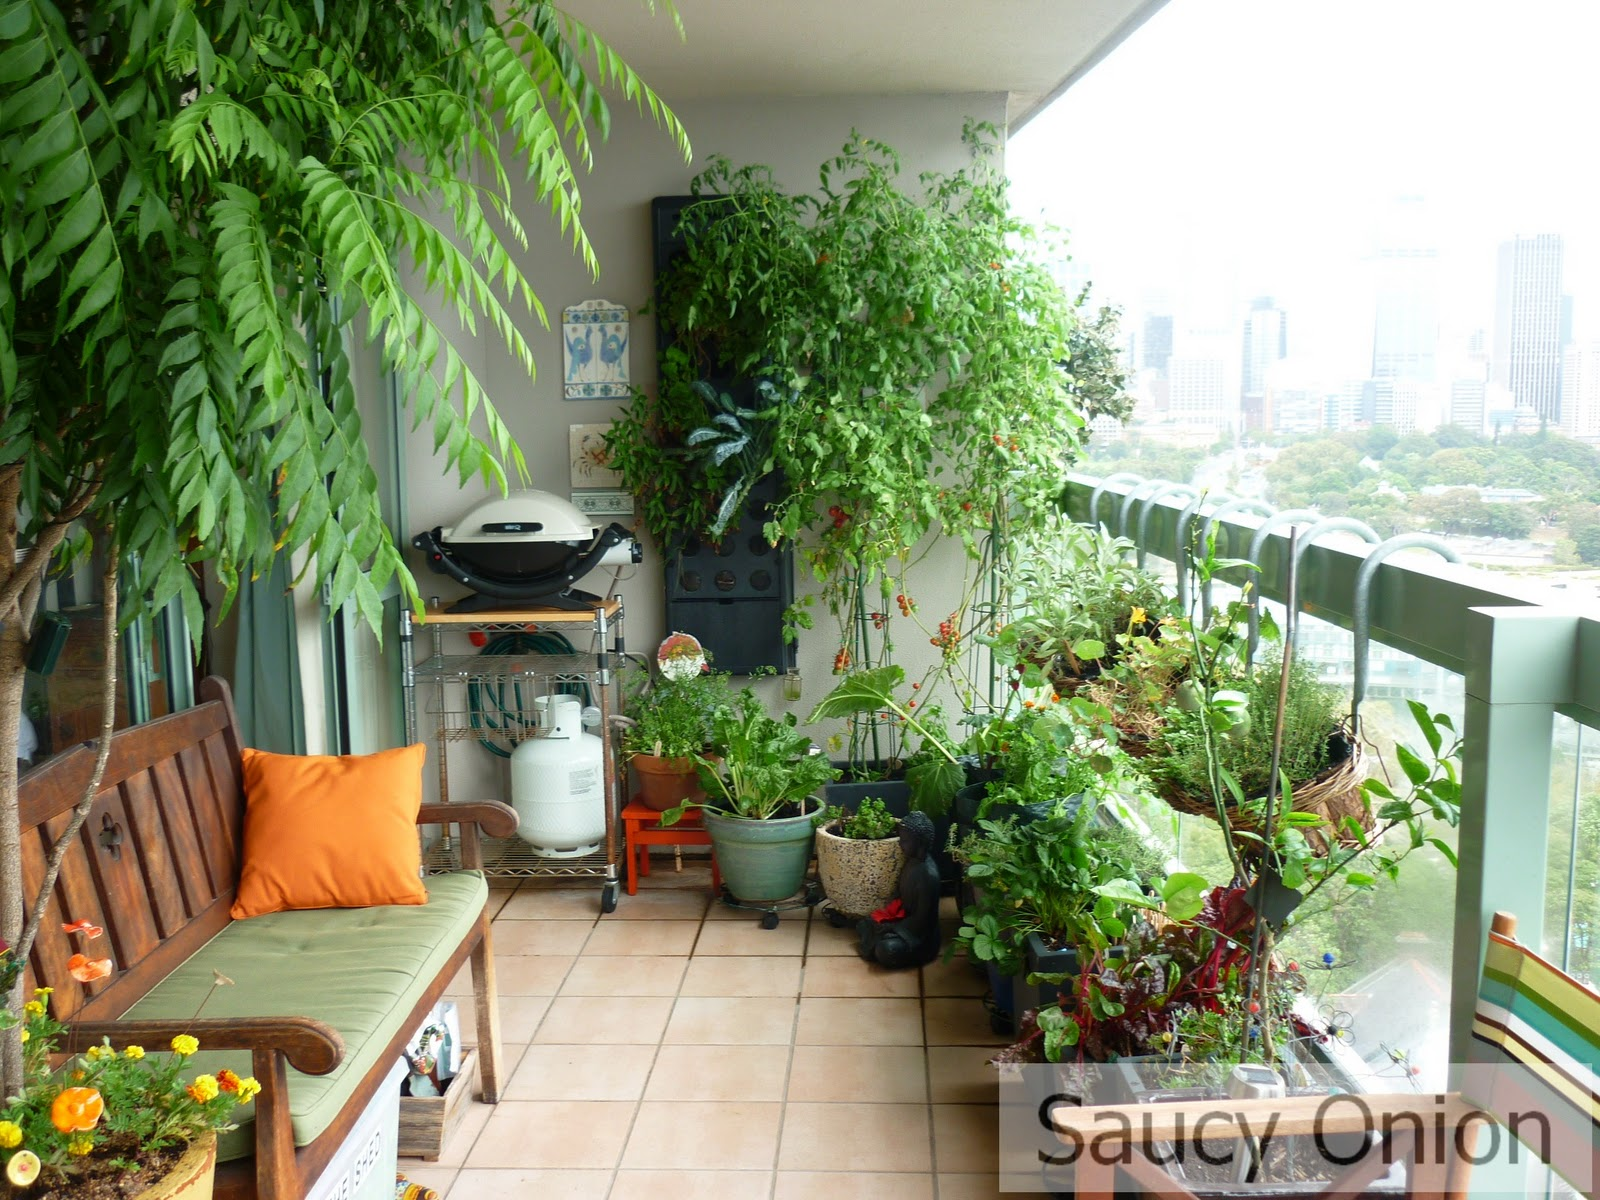 Balcony Privacy Plants Edible Balcony Late Summer Tomatoes Saucy Onion